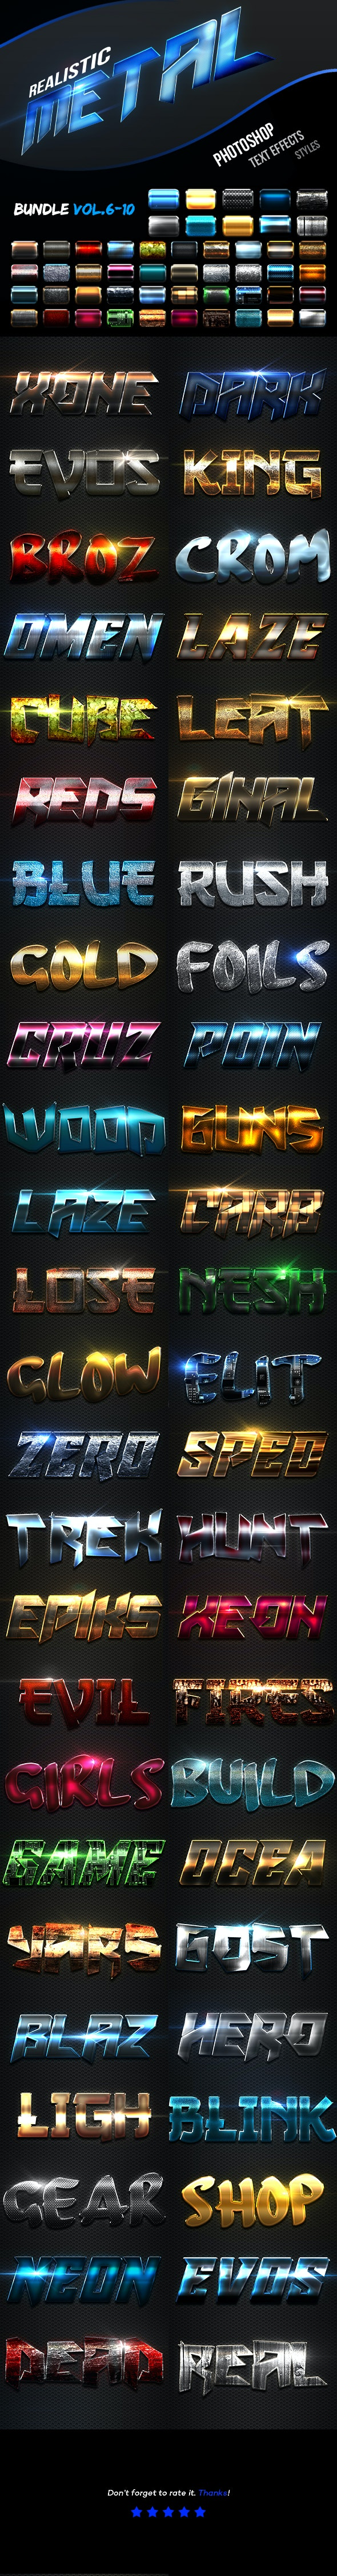 Realistic Metal Text Effects Bundle II - Text Effects Actions